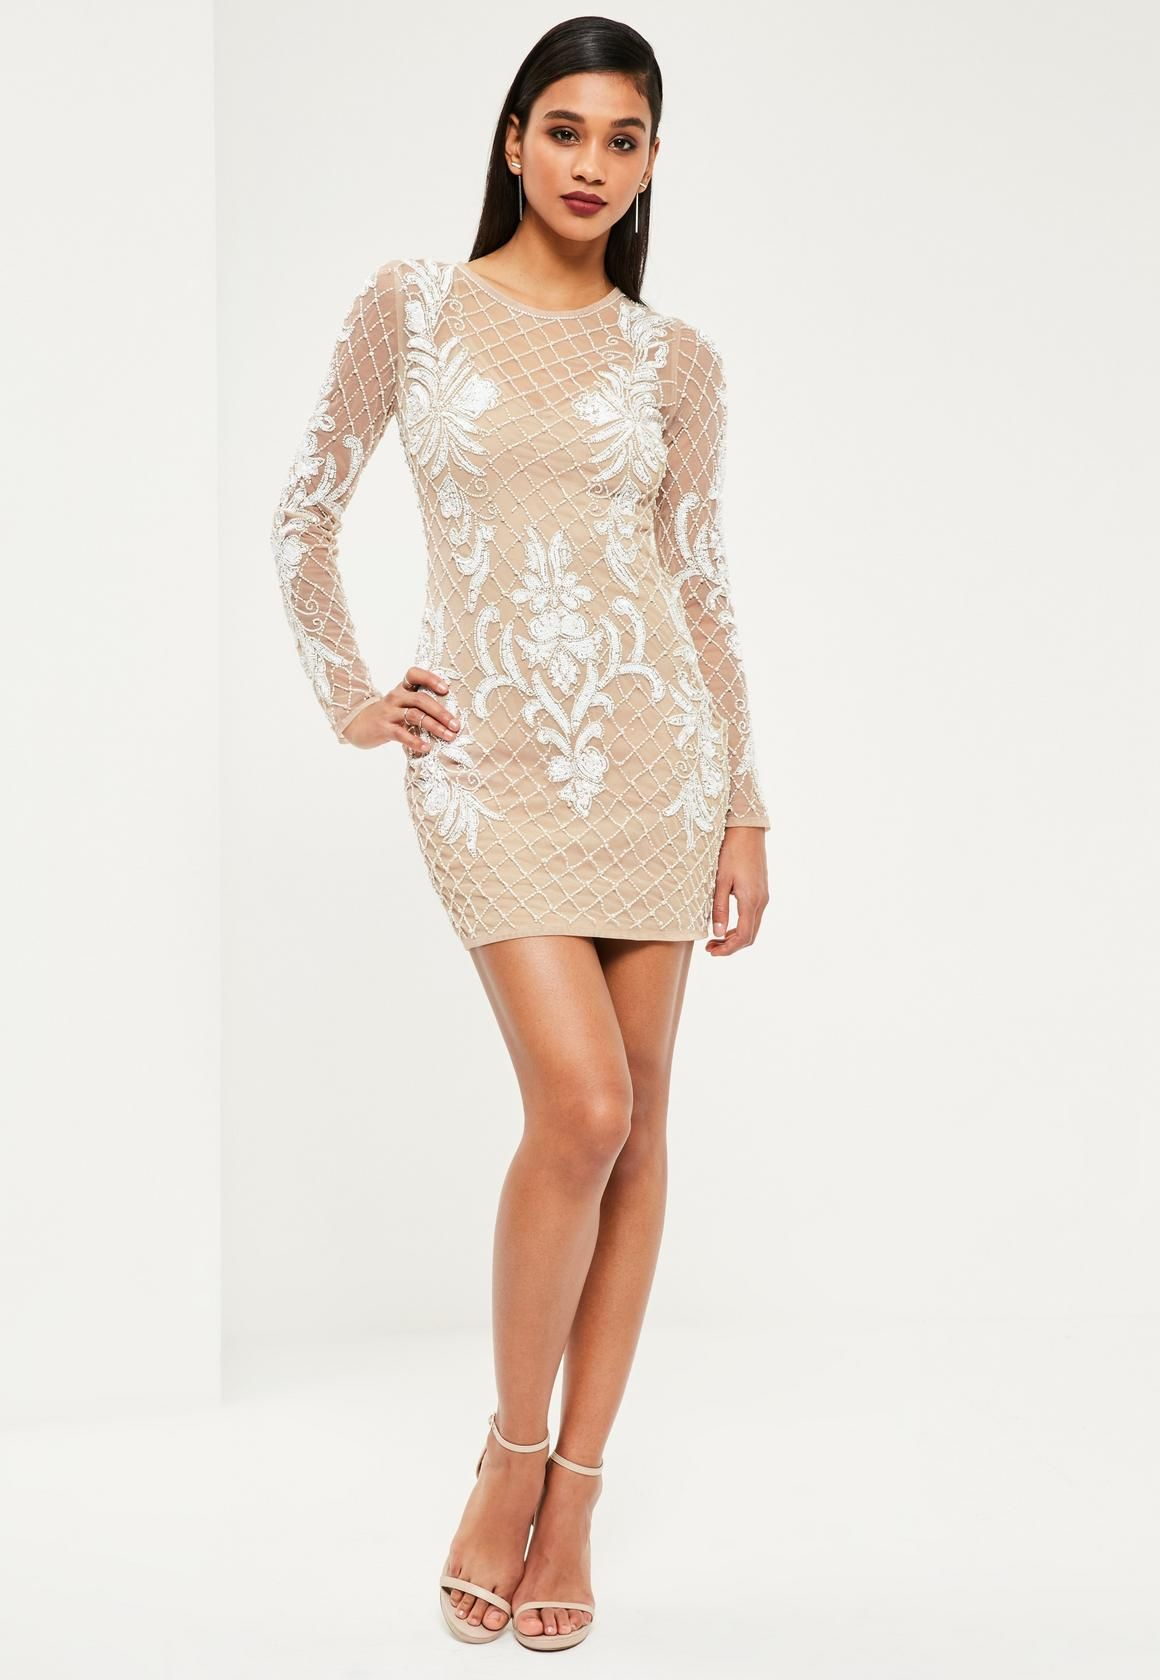 1a37eb6cc72 Missguided - Premium Nude Embellished Long Sleeve Bodycon Dress ...